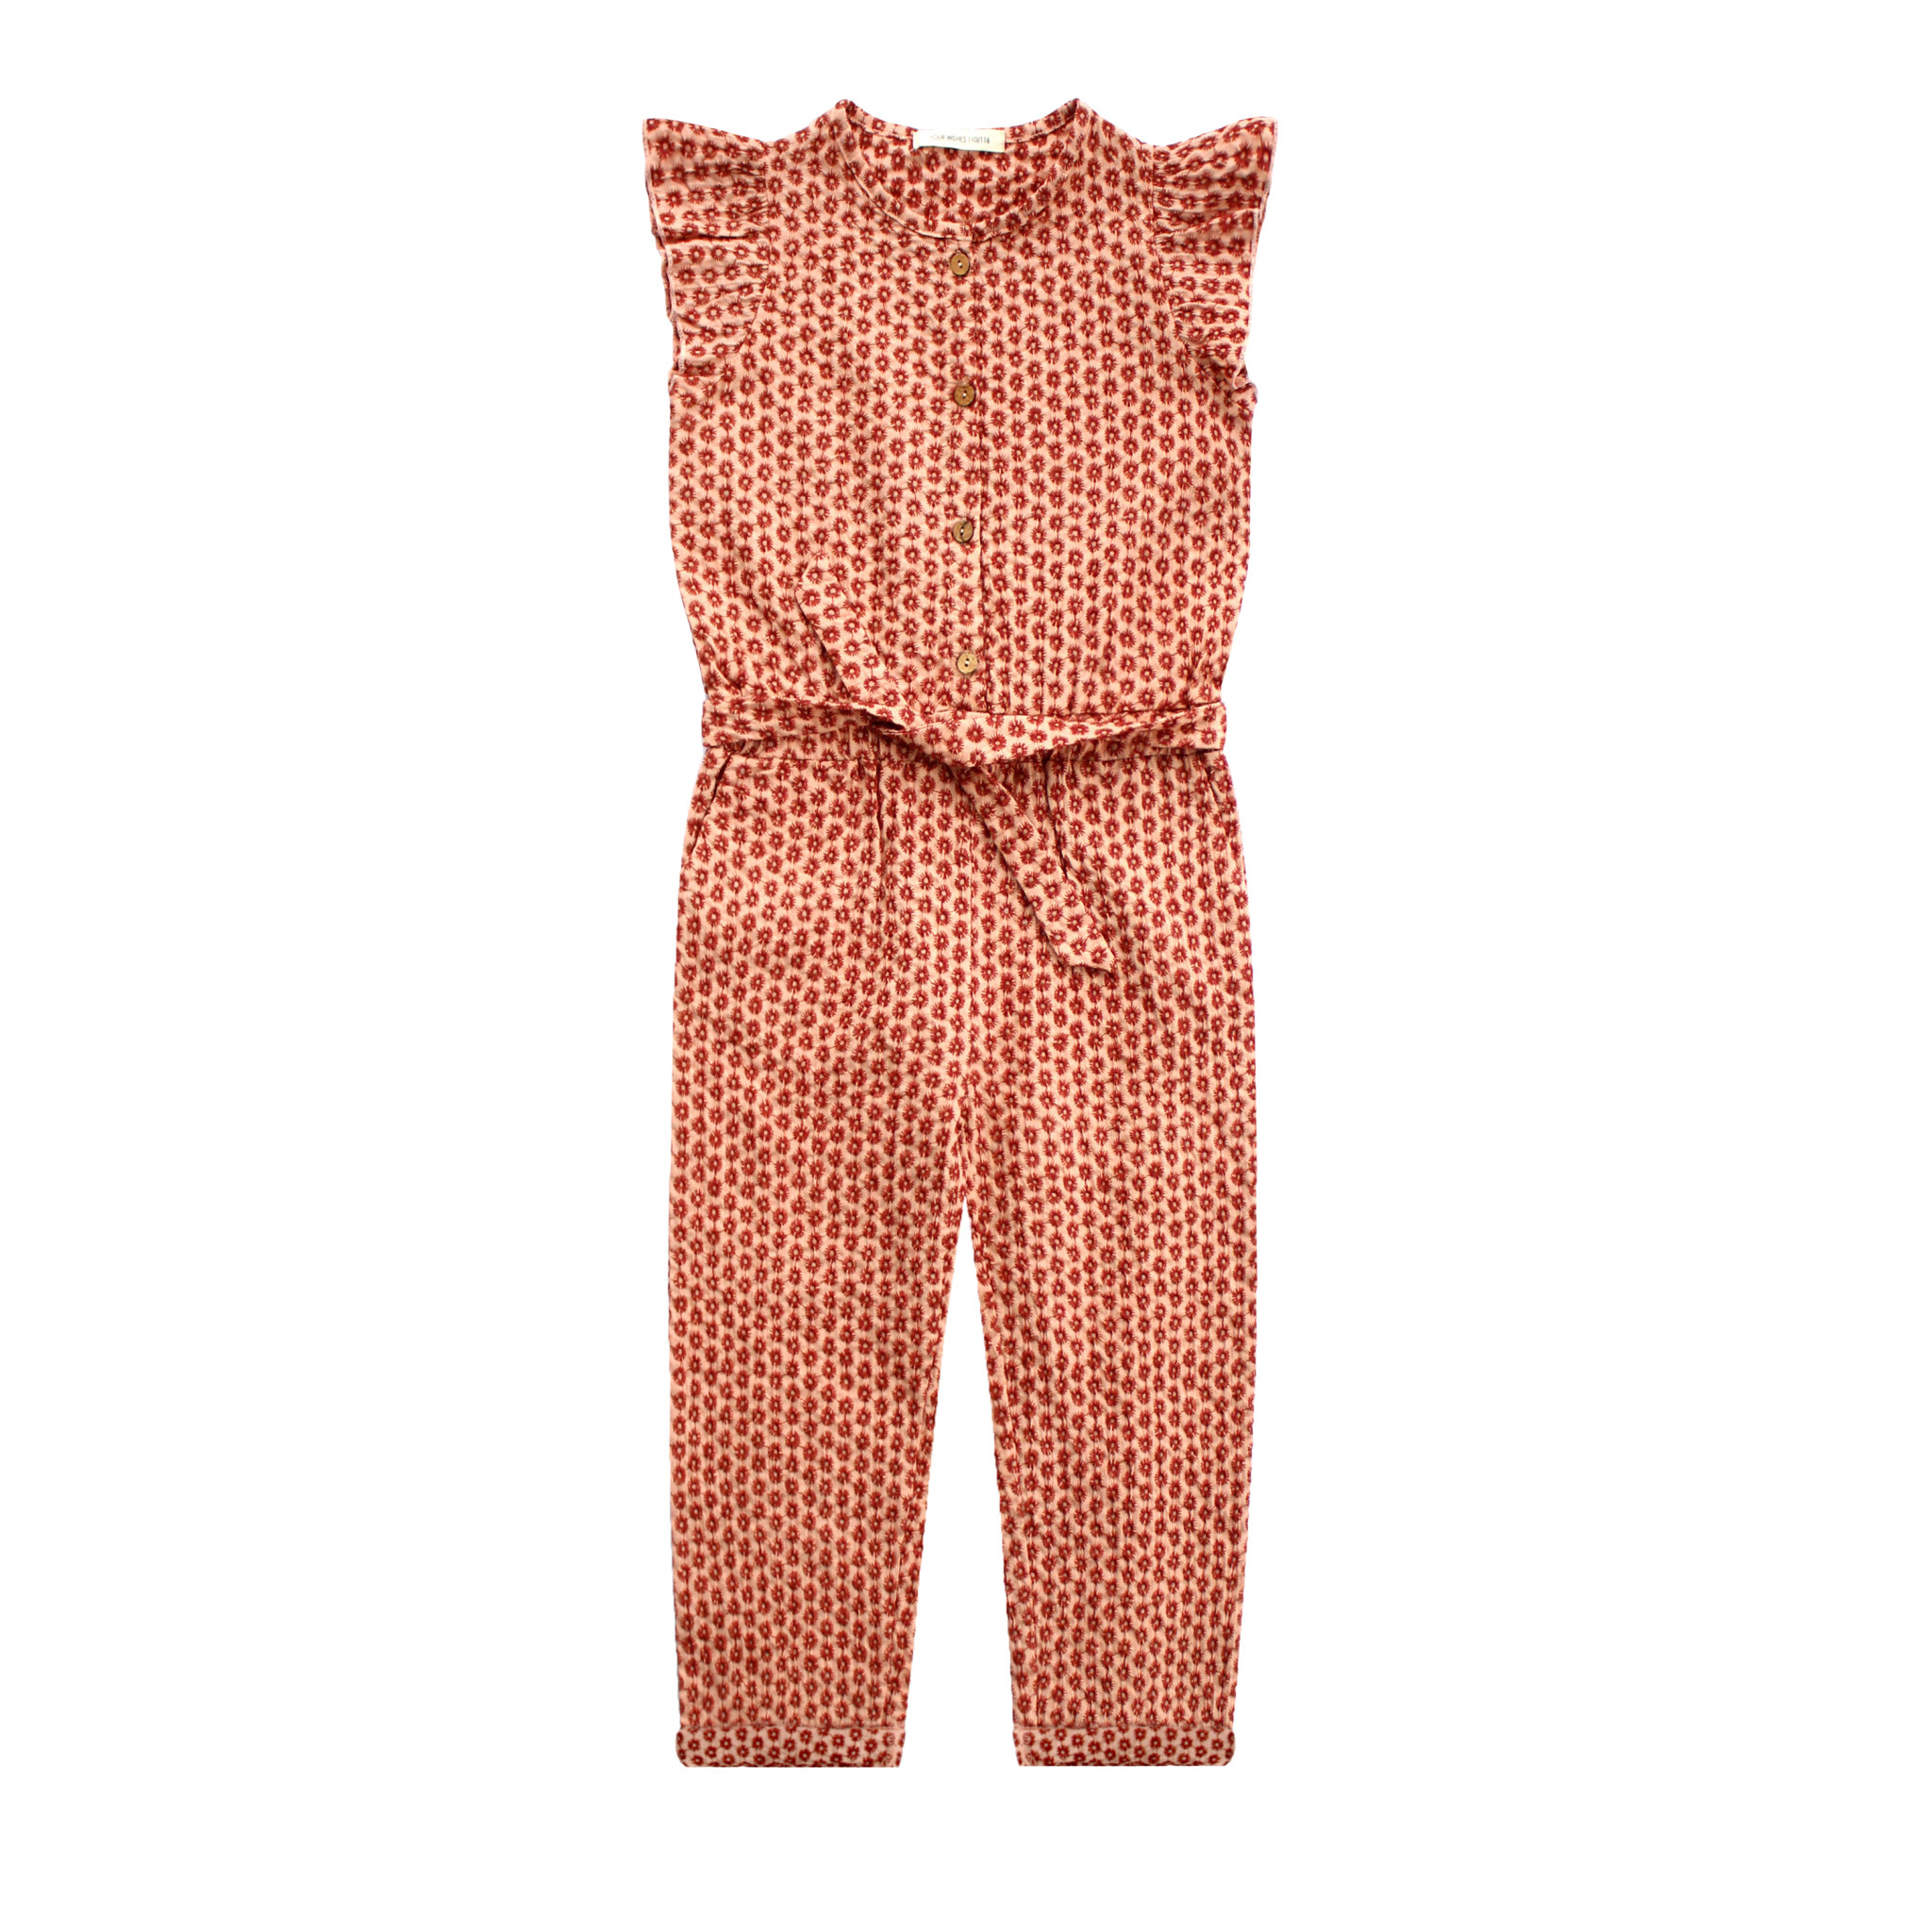 Your Wishes Broderie Terra Ruffle Jumpsuit